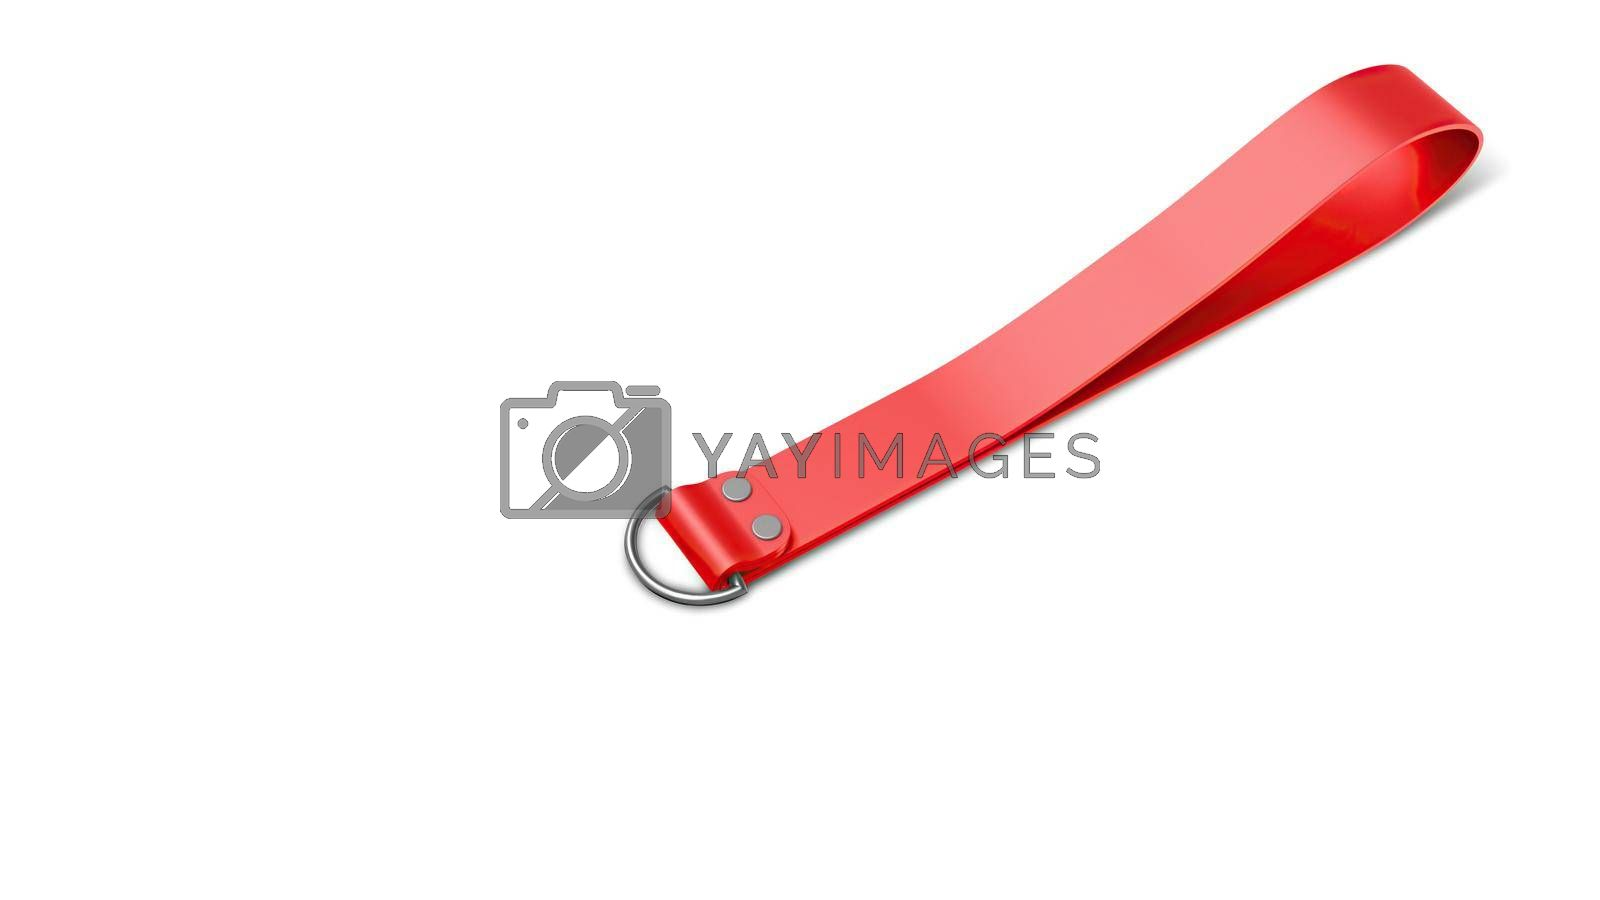 Silicone Keychain Mockup Perspective View Without Key